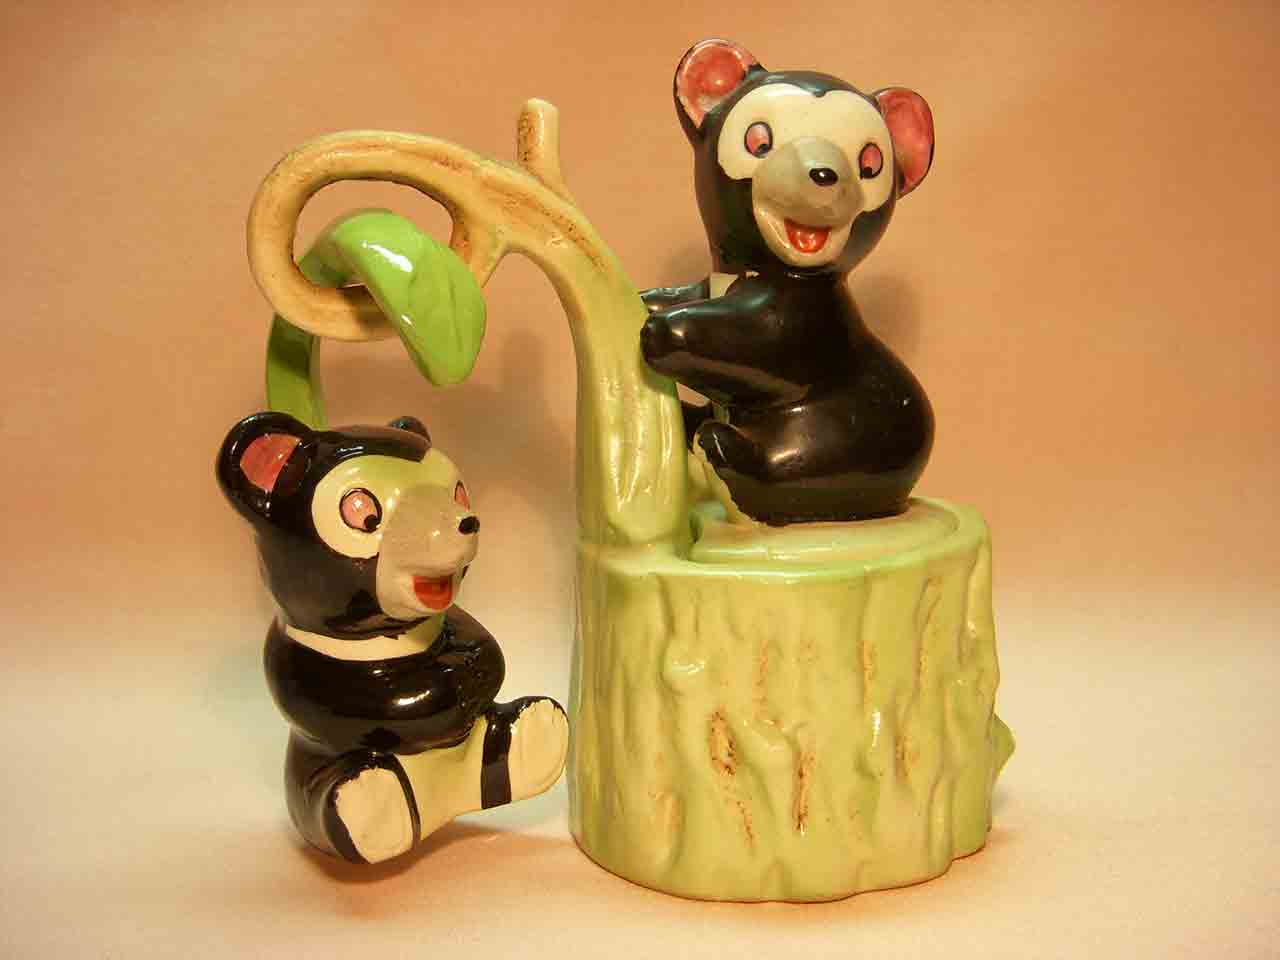 Bear condiment and hanger salt and pepper shakers